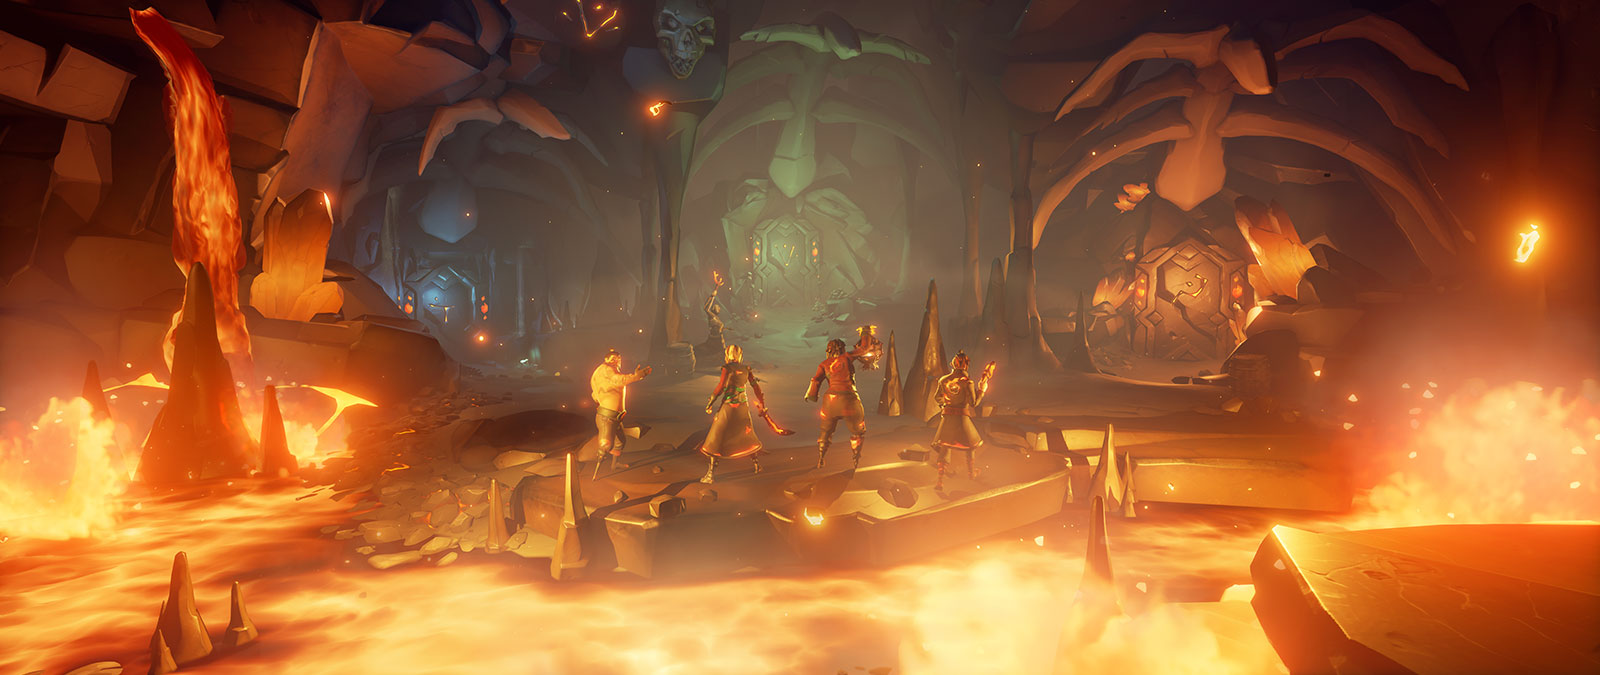 Four characters from Sea of Thieves in a cave with lava